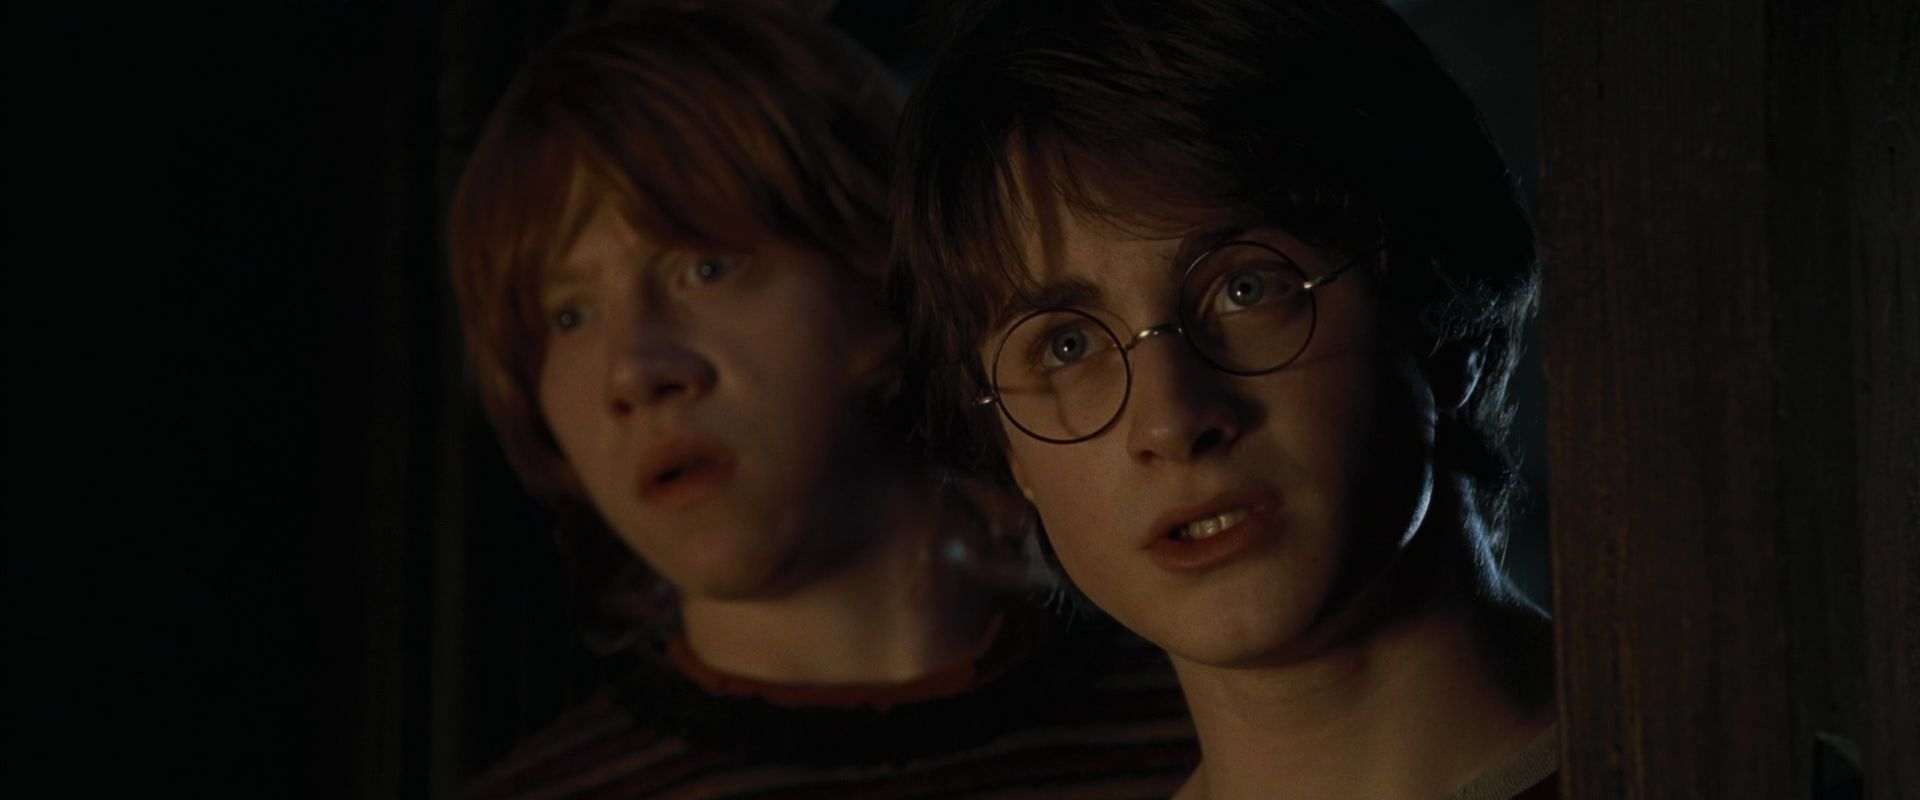 harry potter and the goblet of Harry potter and the goblet of fire pc game free download setup in single direct link for windows it's an exciting action game which is based on a film story.